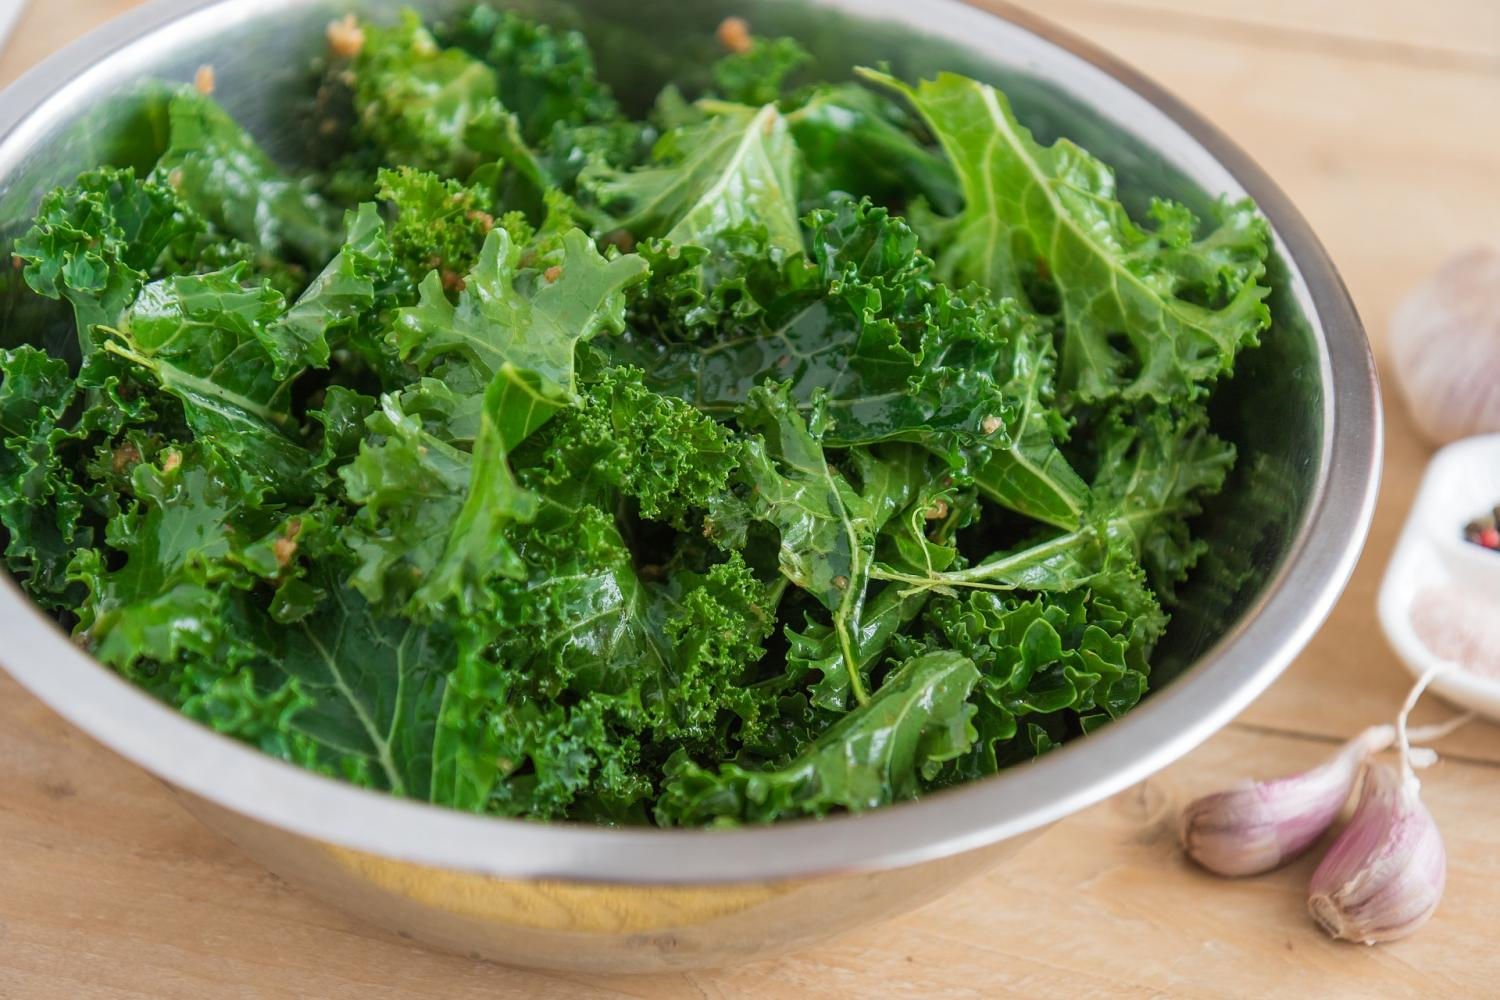 Kale - the sweet winter vegetable